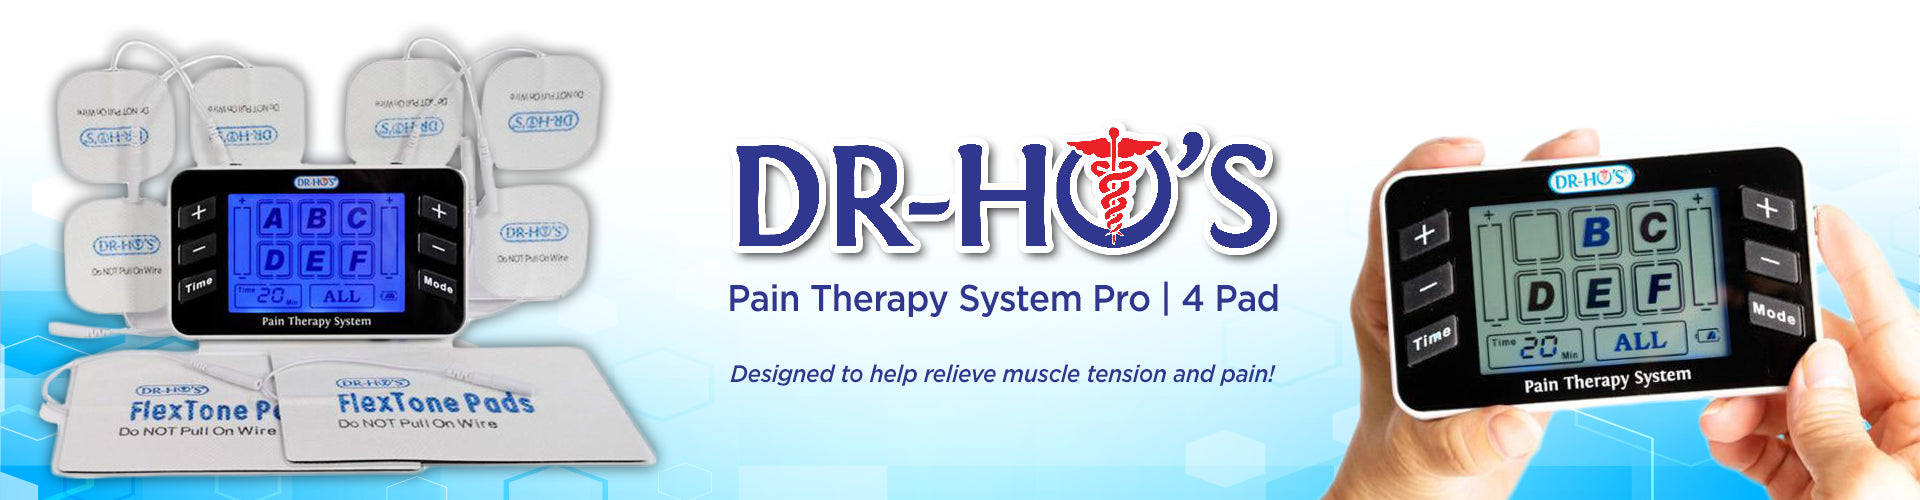 Pain Therapy Pro